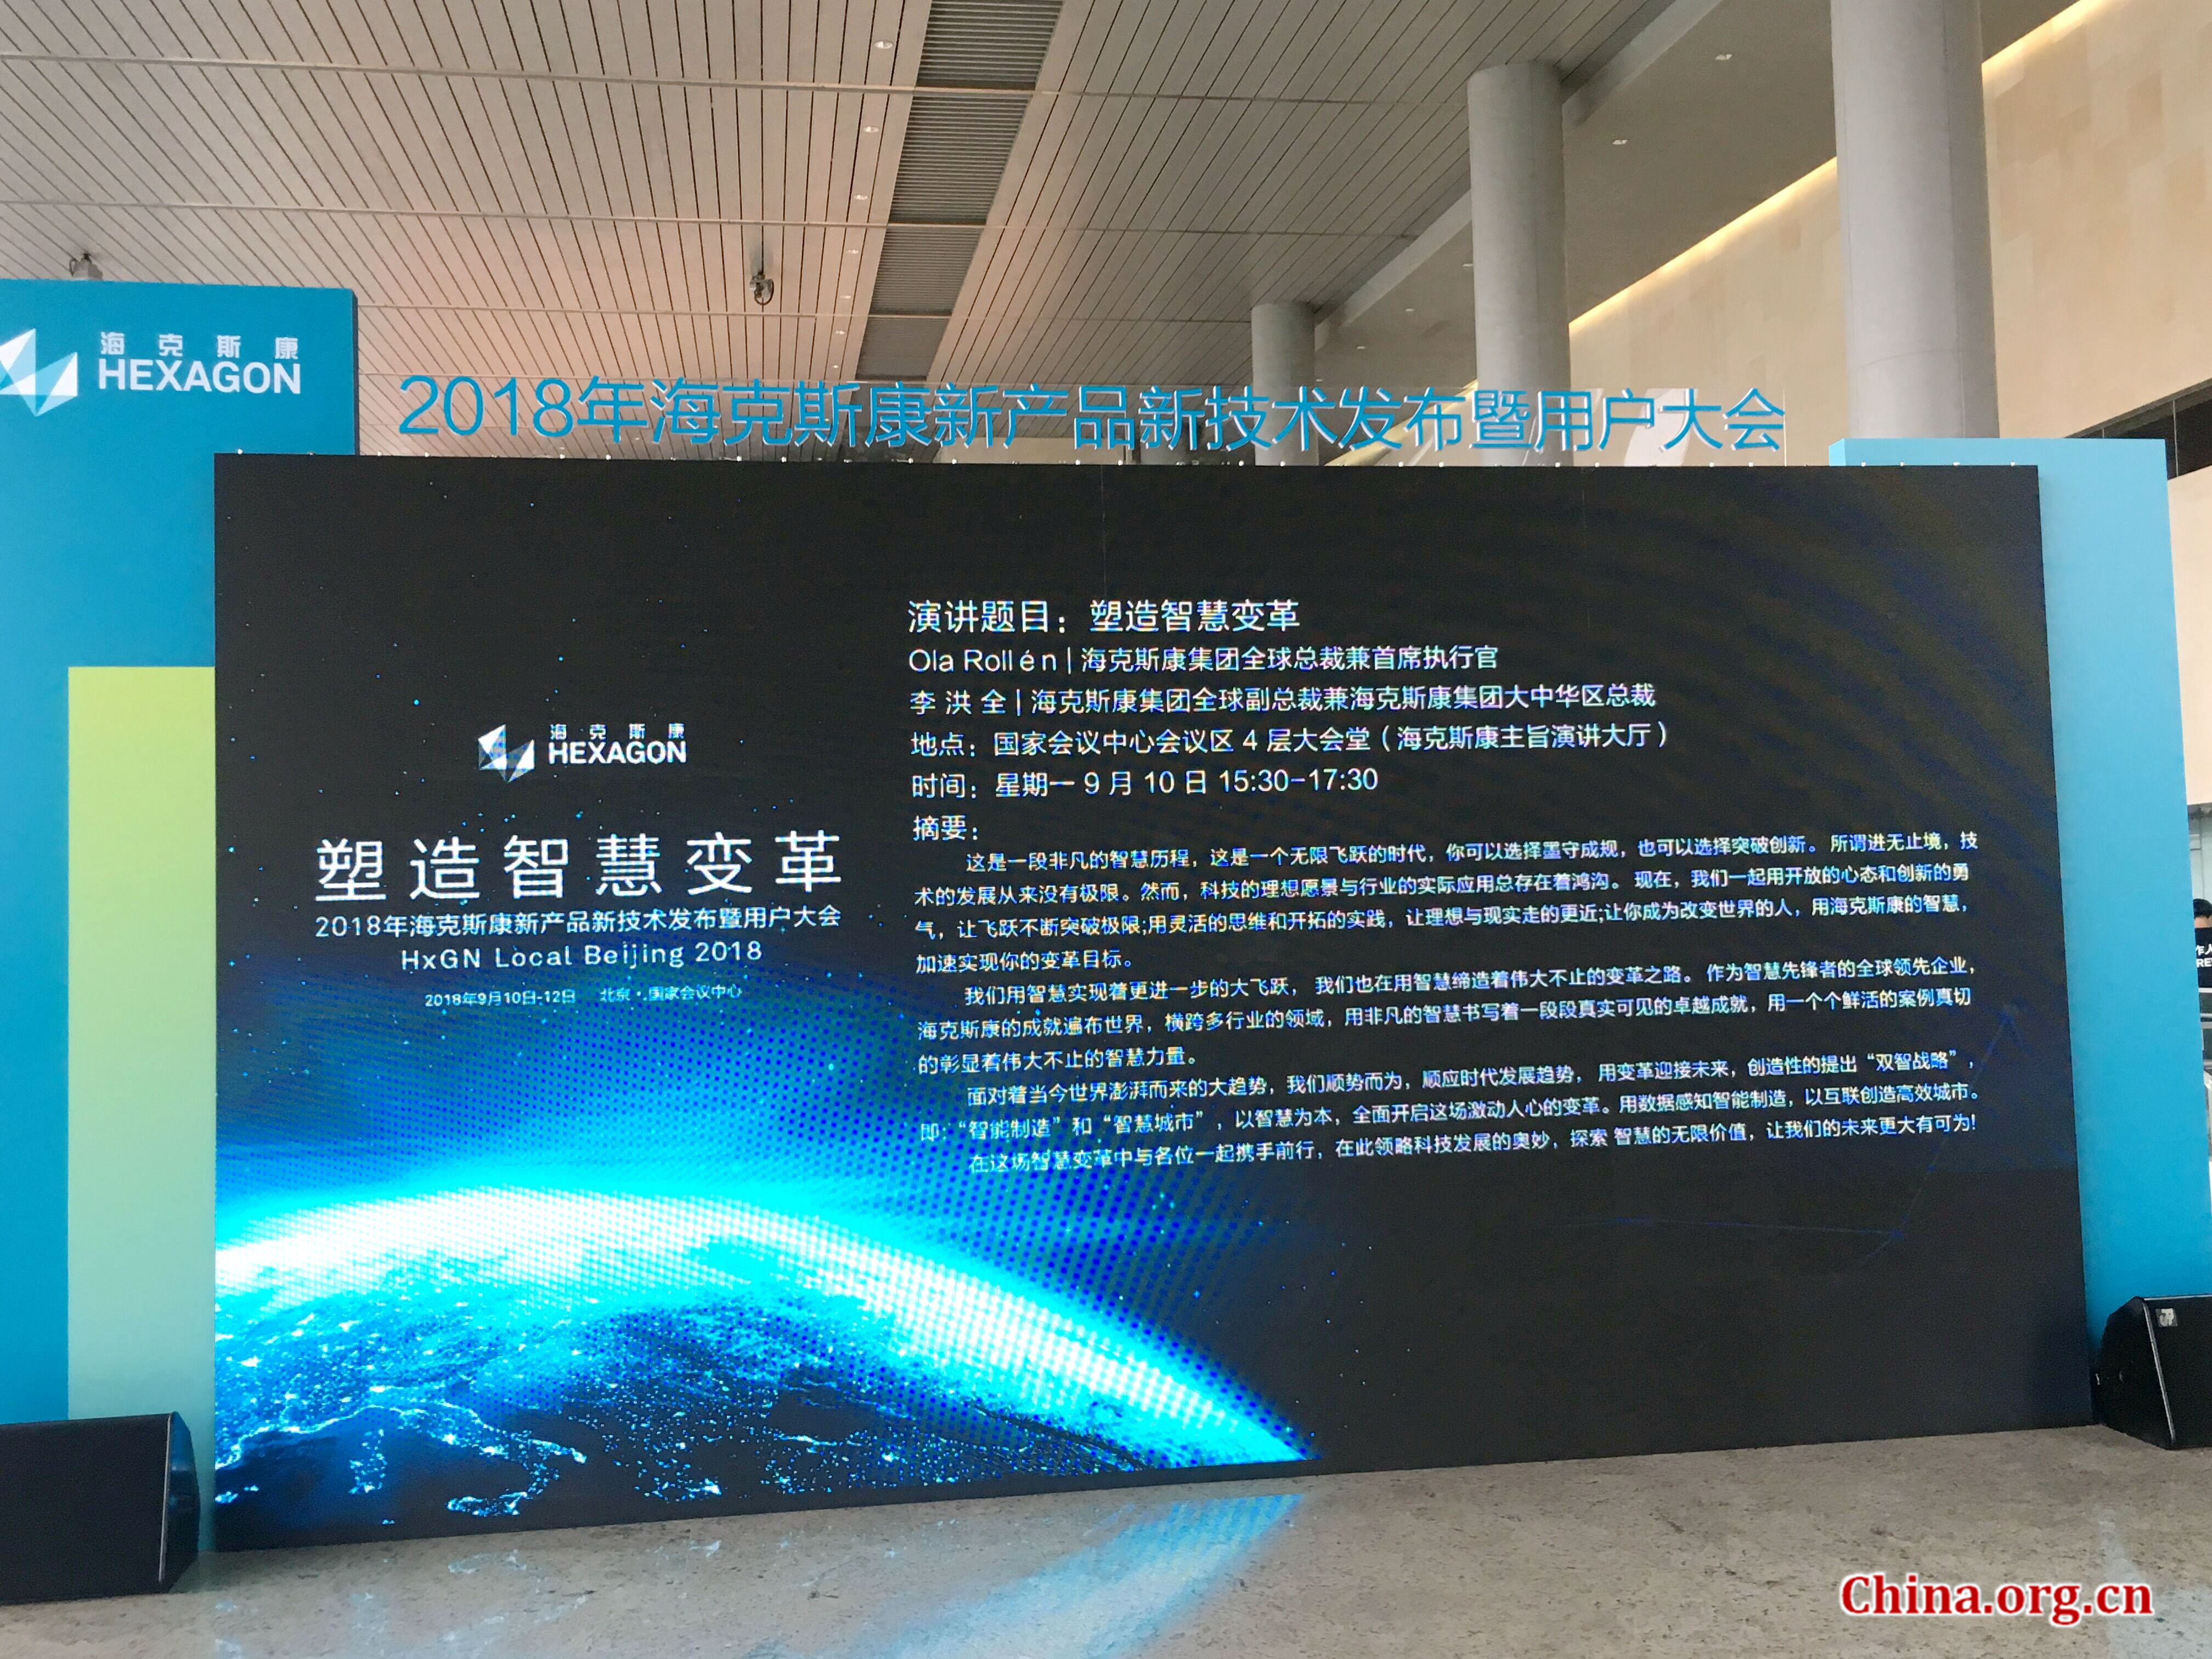 Hexagon's cross-industry technology conference was held in Beijing on Sep 10, 2018. [Photo by Cui Can/China.org.cn]